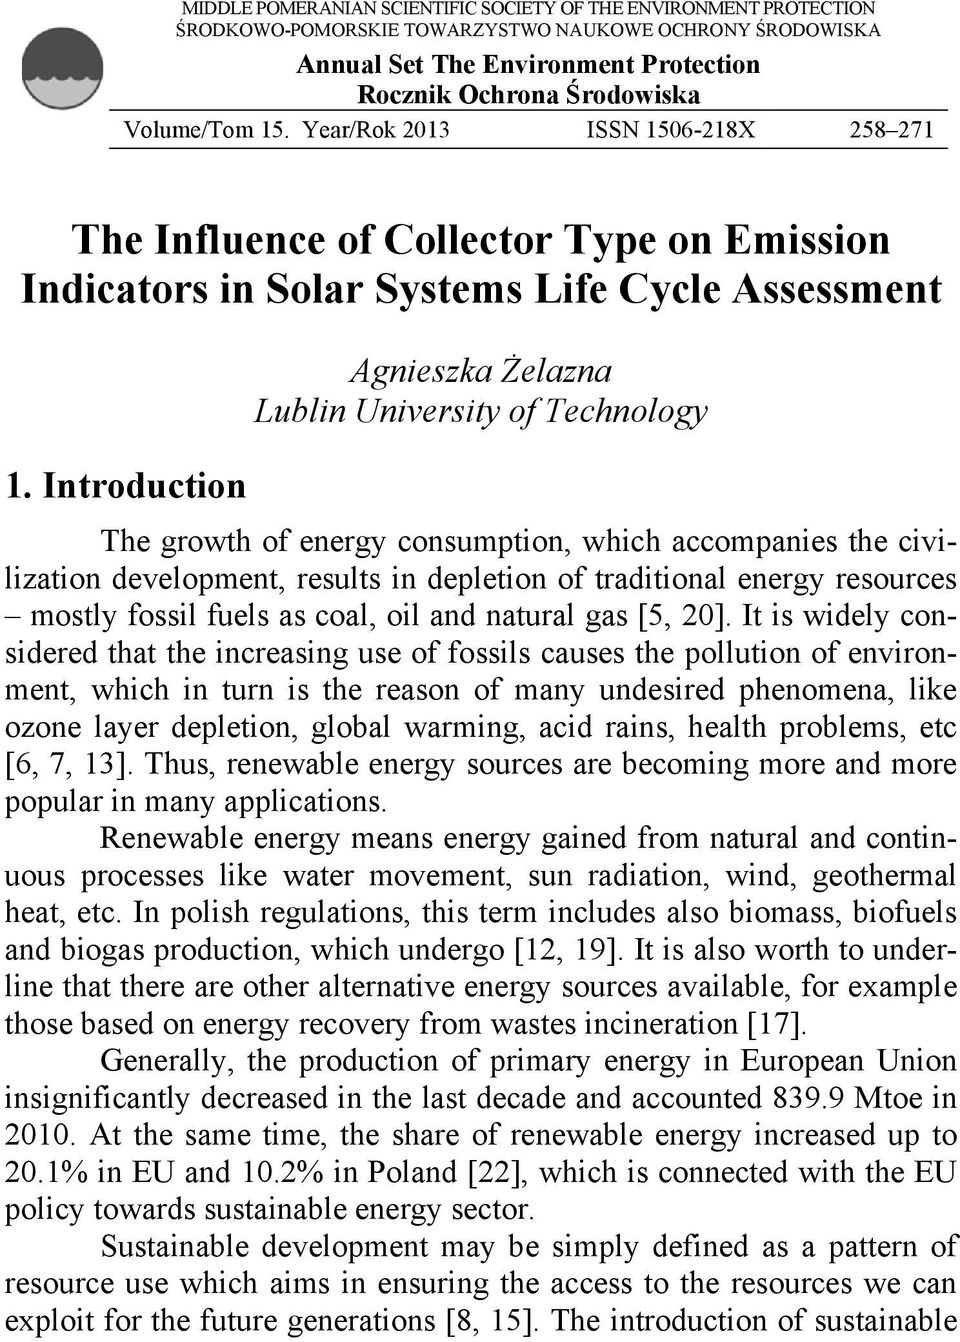 Introduction Agnieszka Żelazna Lublin University of Technology The growth of energy consumption, which accompanies the civilization development, results in depletion of traditional energy resources